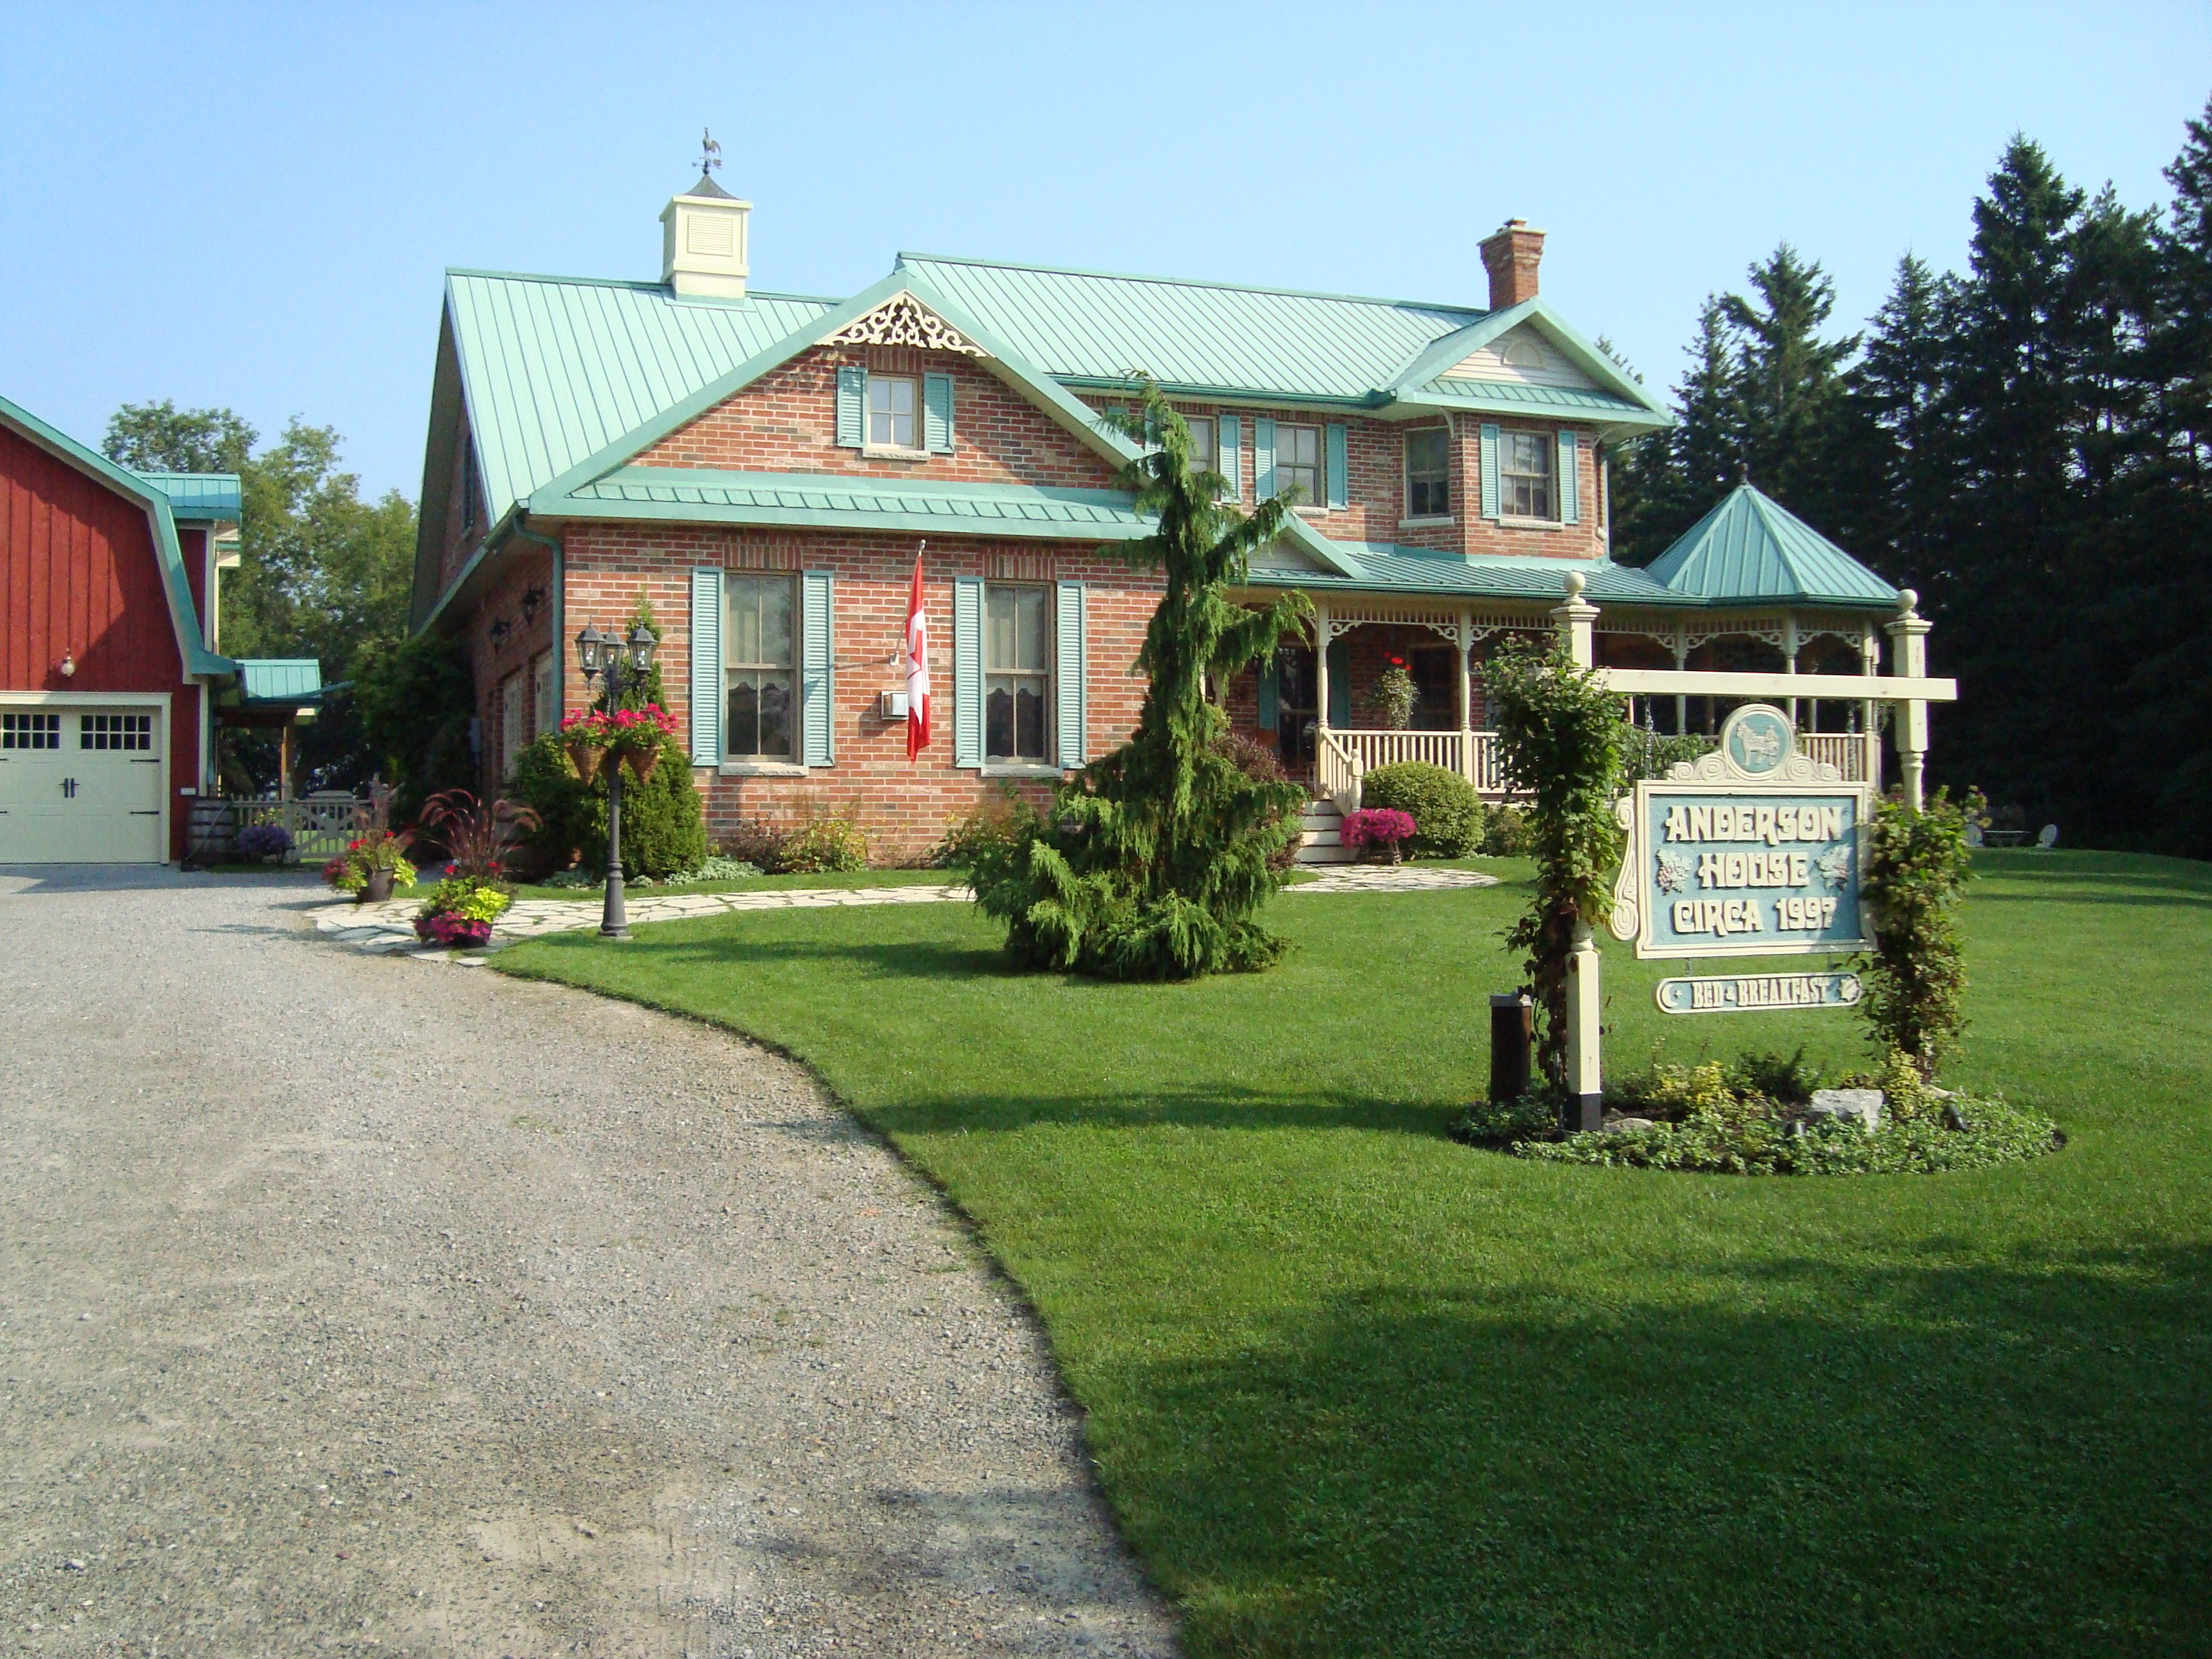 Anderson House Bed & Breakfast image 0